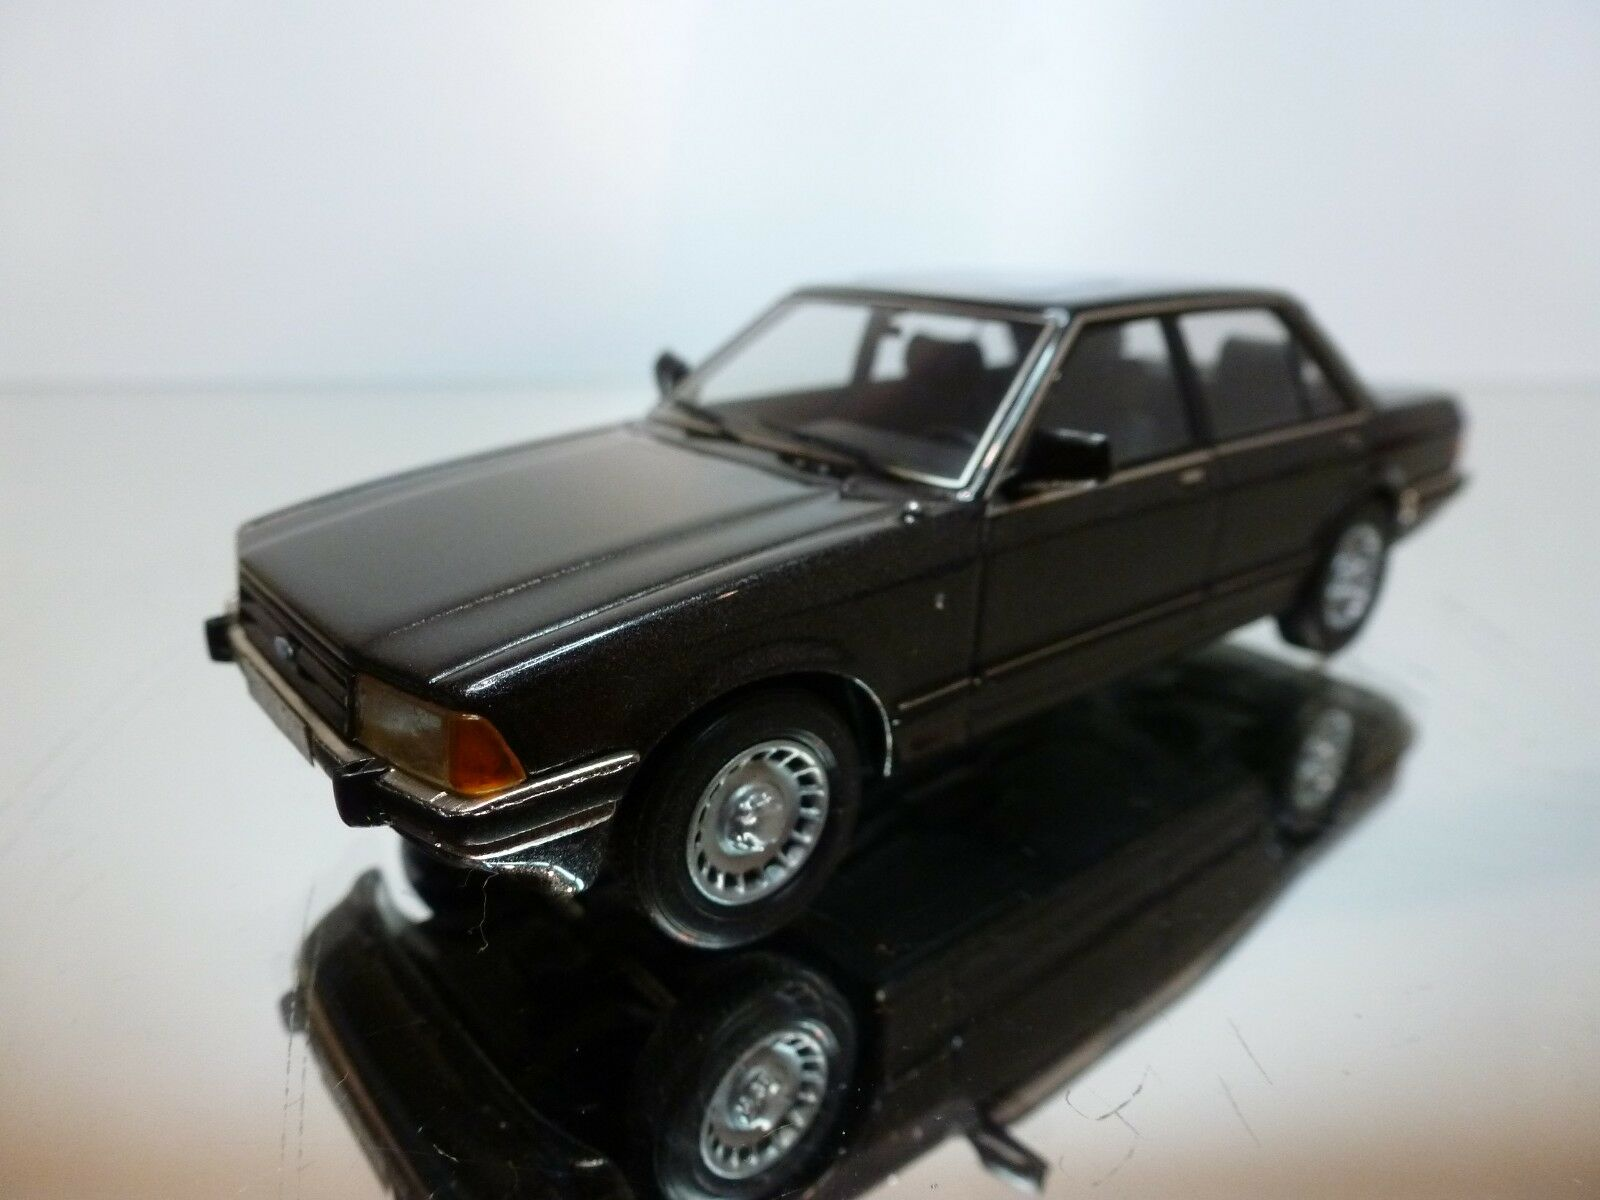 HOMBURG FORD GRANADA GHIA 4-DR 1977 - ANTHRACITE 1 43 - VERY GOOD CONDITION - 18